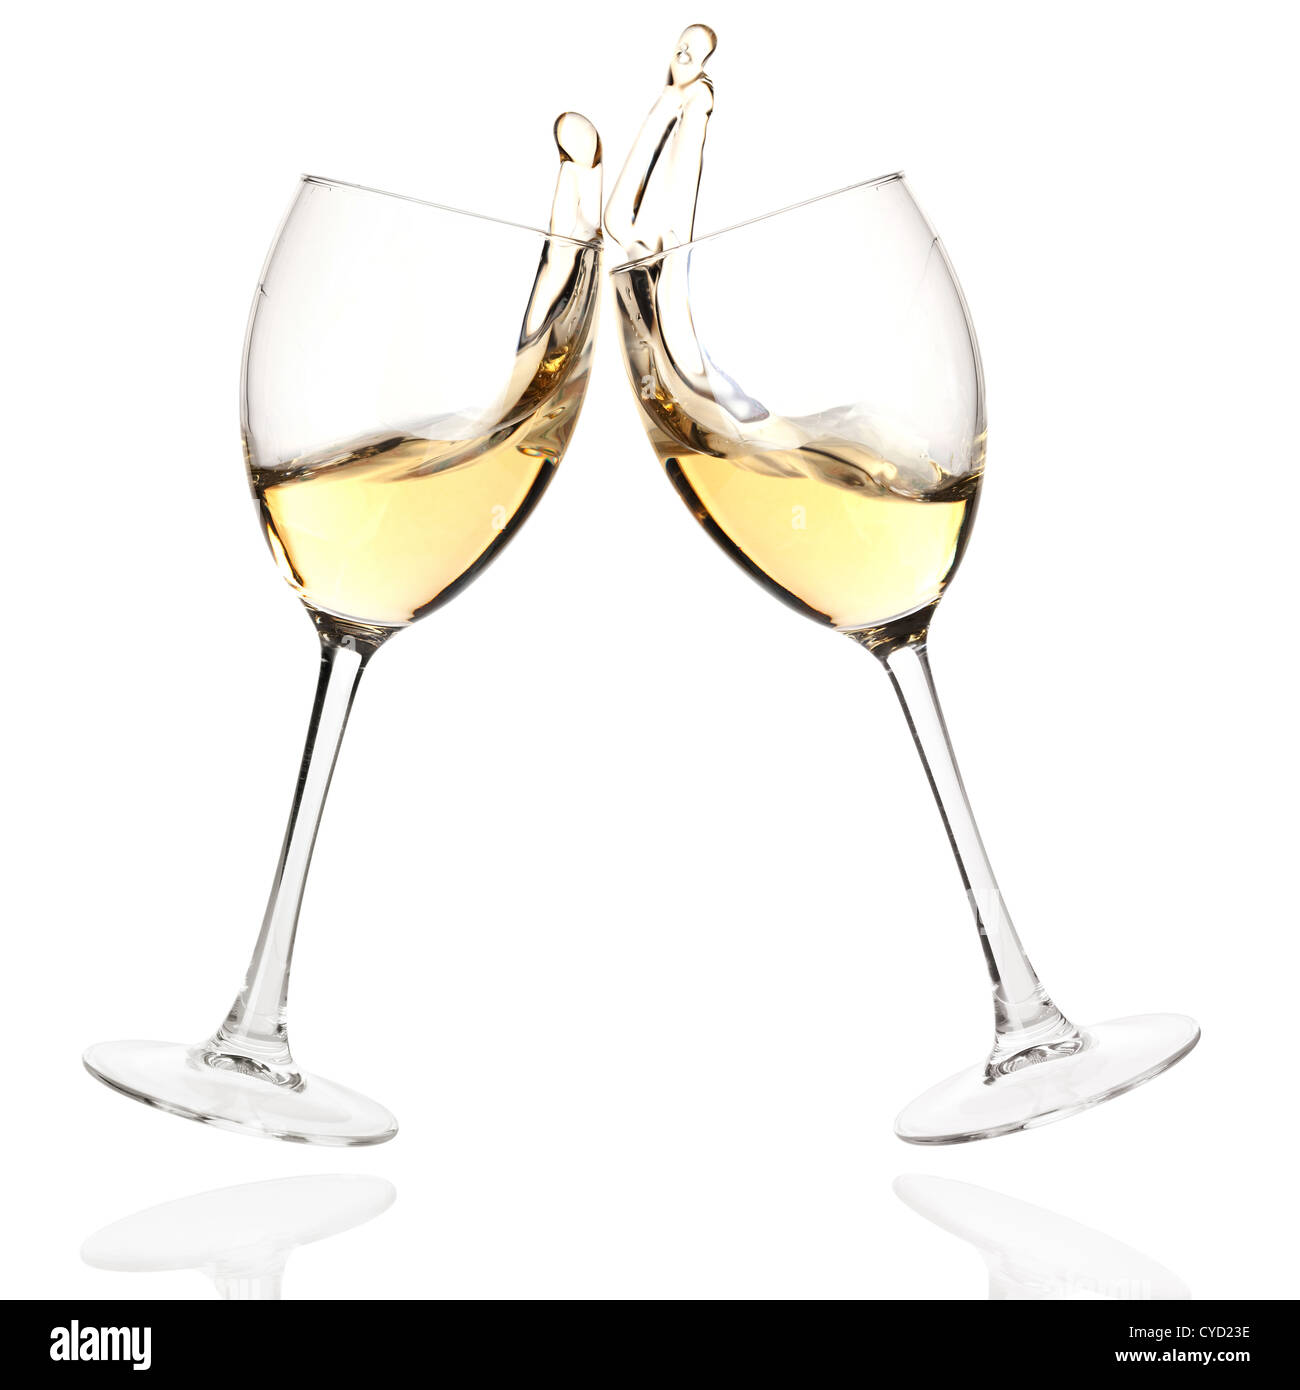 Wine collection - Cheers! Clink glasses with white wine. Isolated on white background - Stock Image